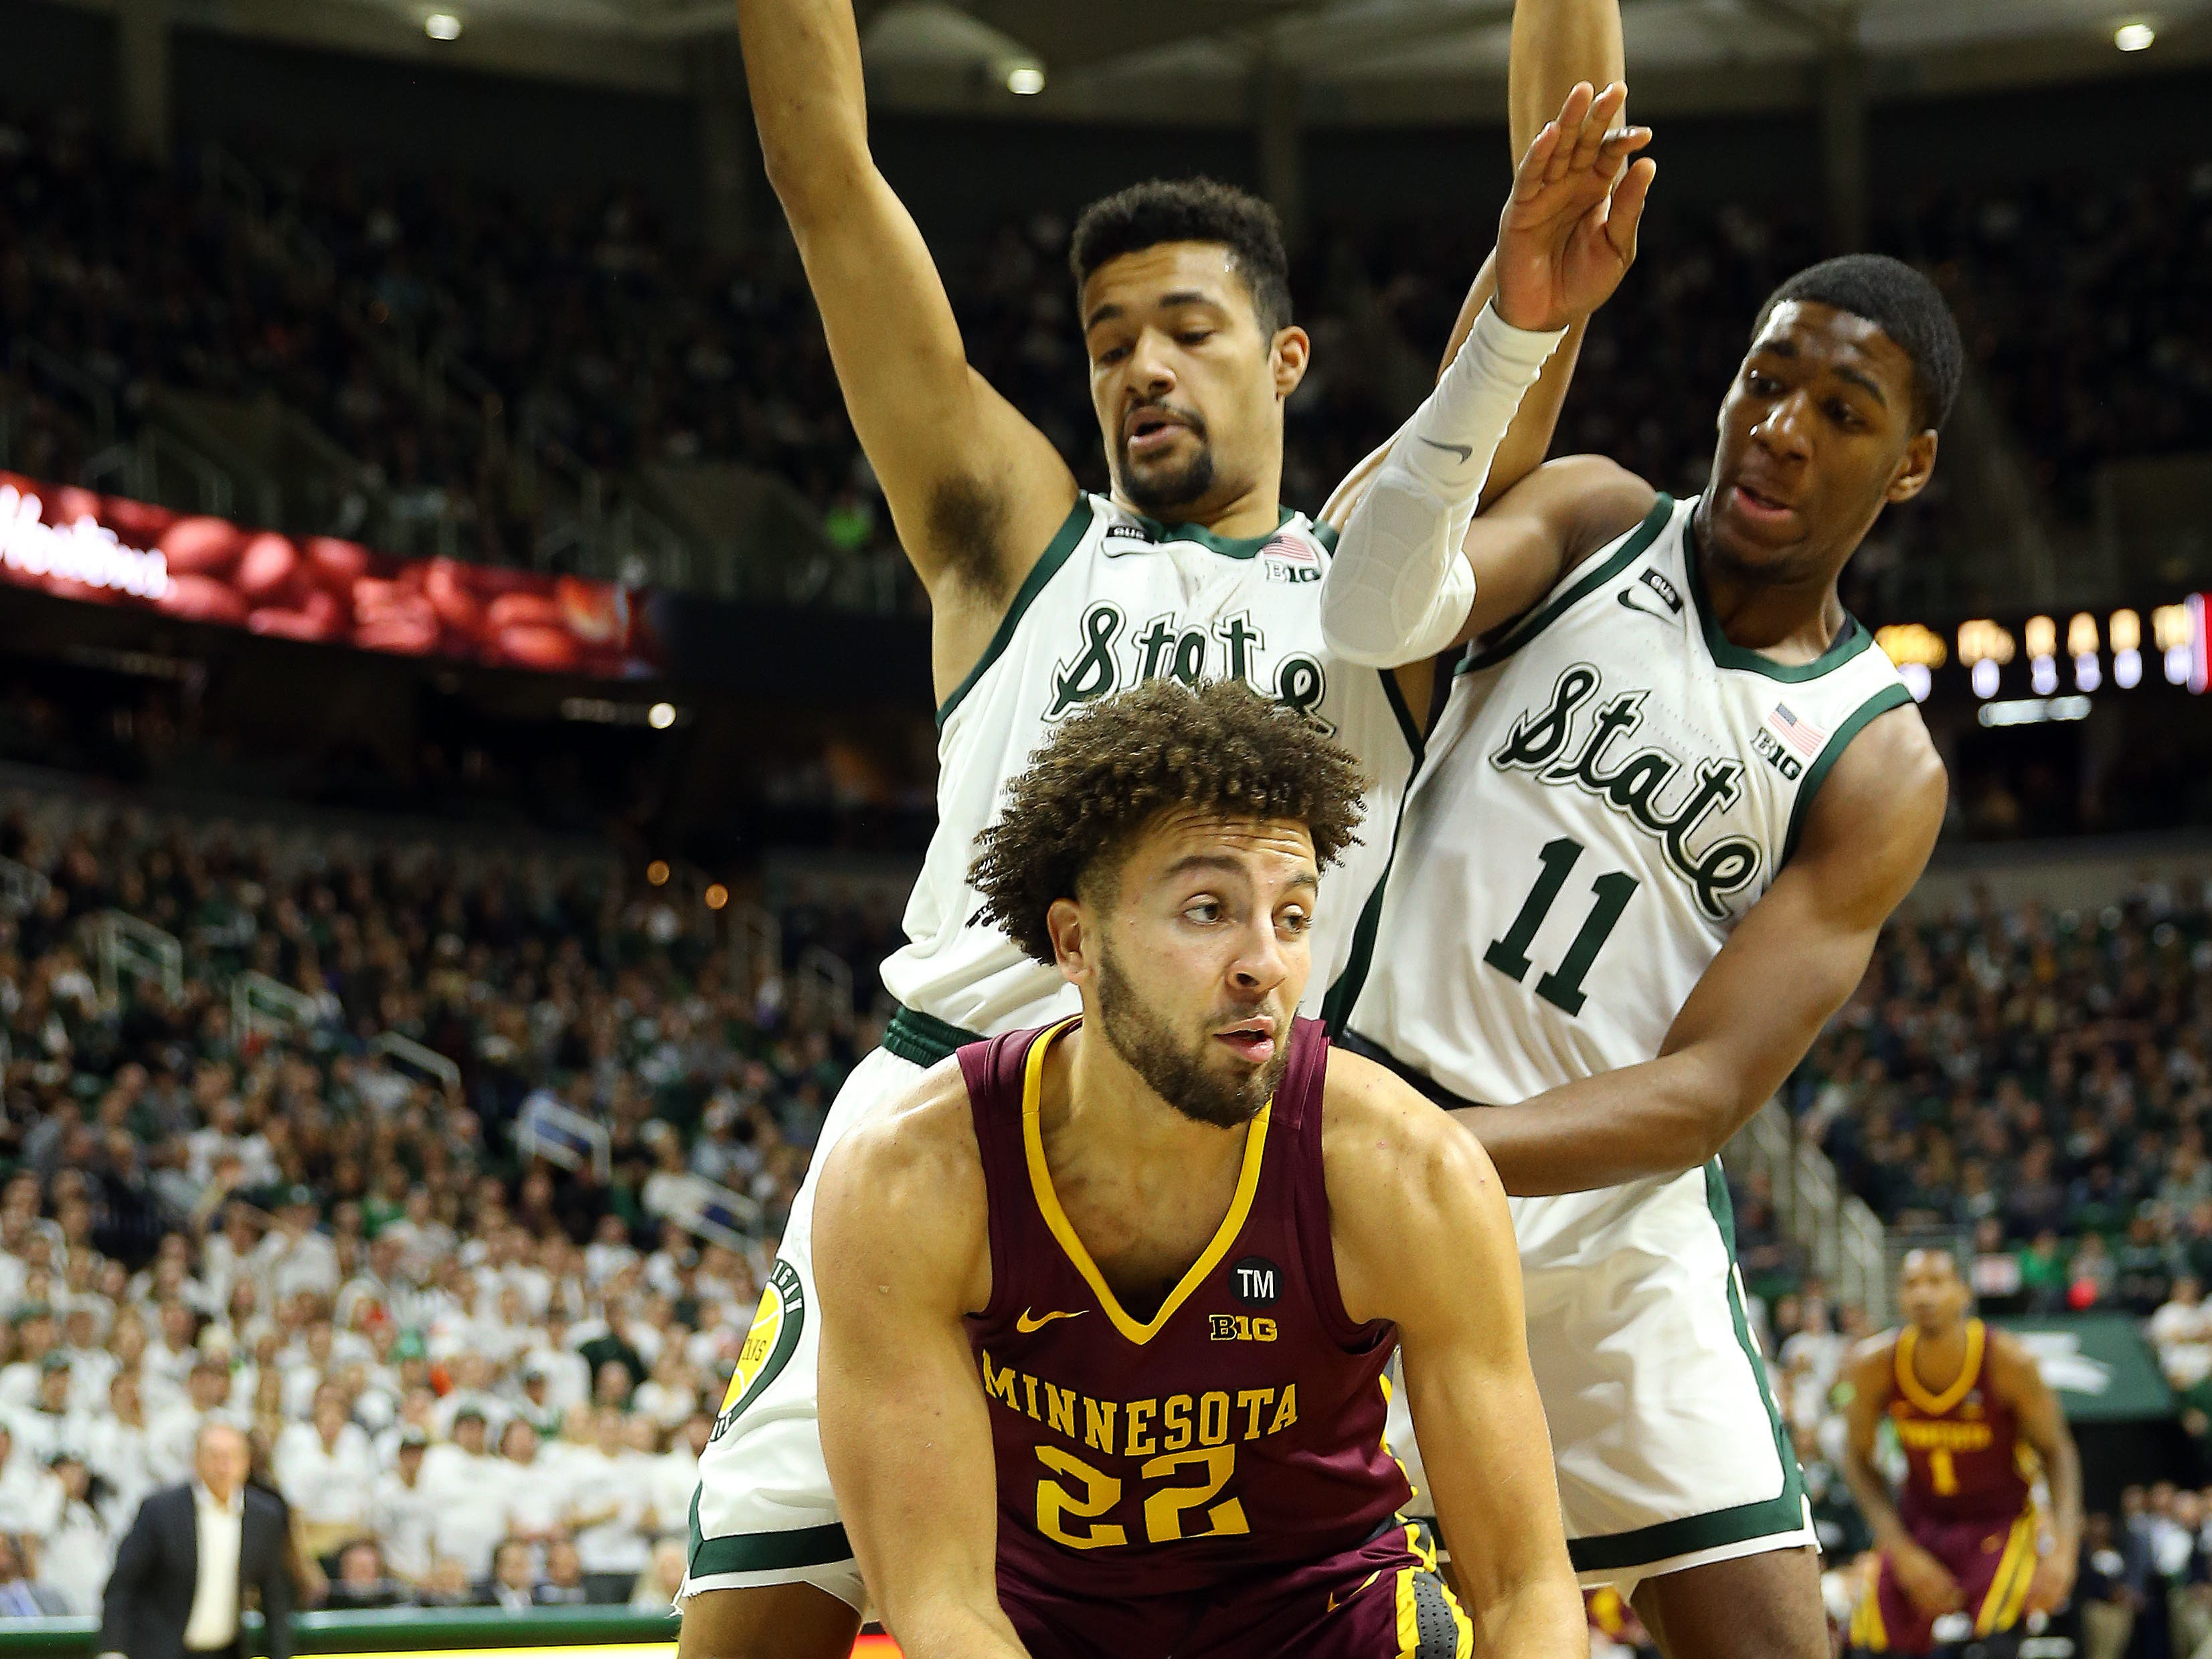 Feb 9, 2019; East Lansing, MI, USA; Minnesota Golden Gophers guard Gabe Kalscheur (22) dribbles against Michigan State Spartans forward Kenny Goins (25) and forward Aaron Henry (11) during the first half at the Breslin Center. Mandatory Credit: Mike Carter-USA TODAY Sports